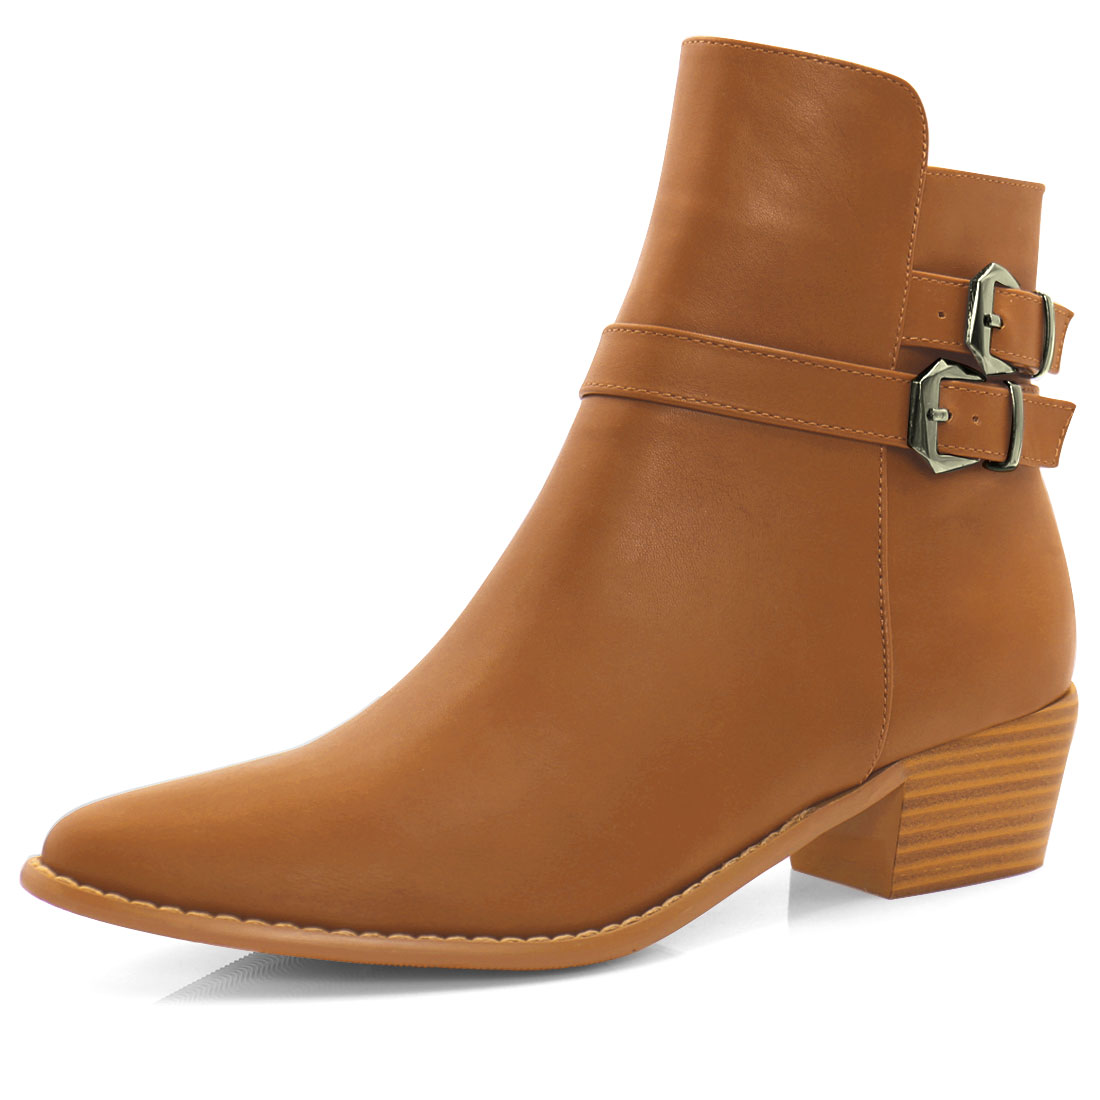 Women Pointed Toe Buckled Strap Zipper Ankle Boots Brown US 8.5